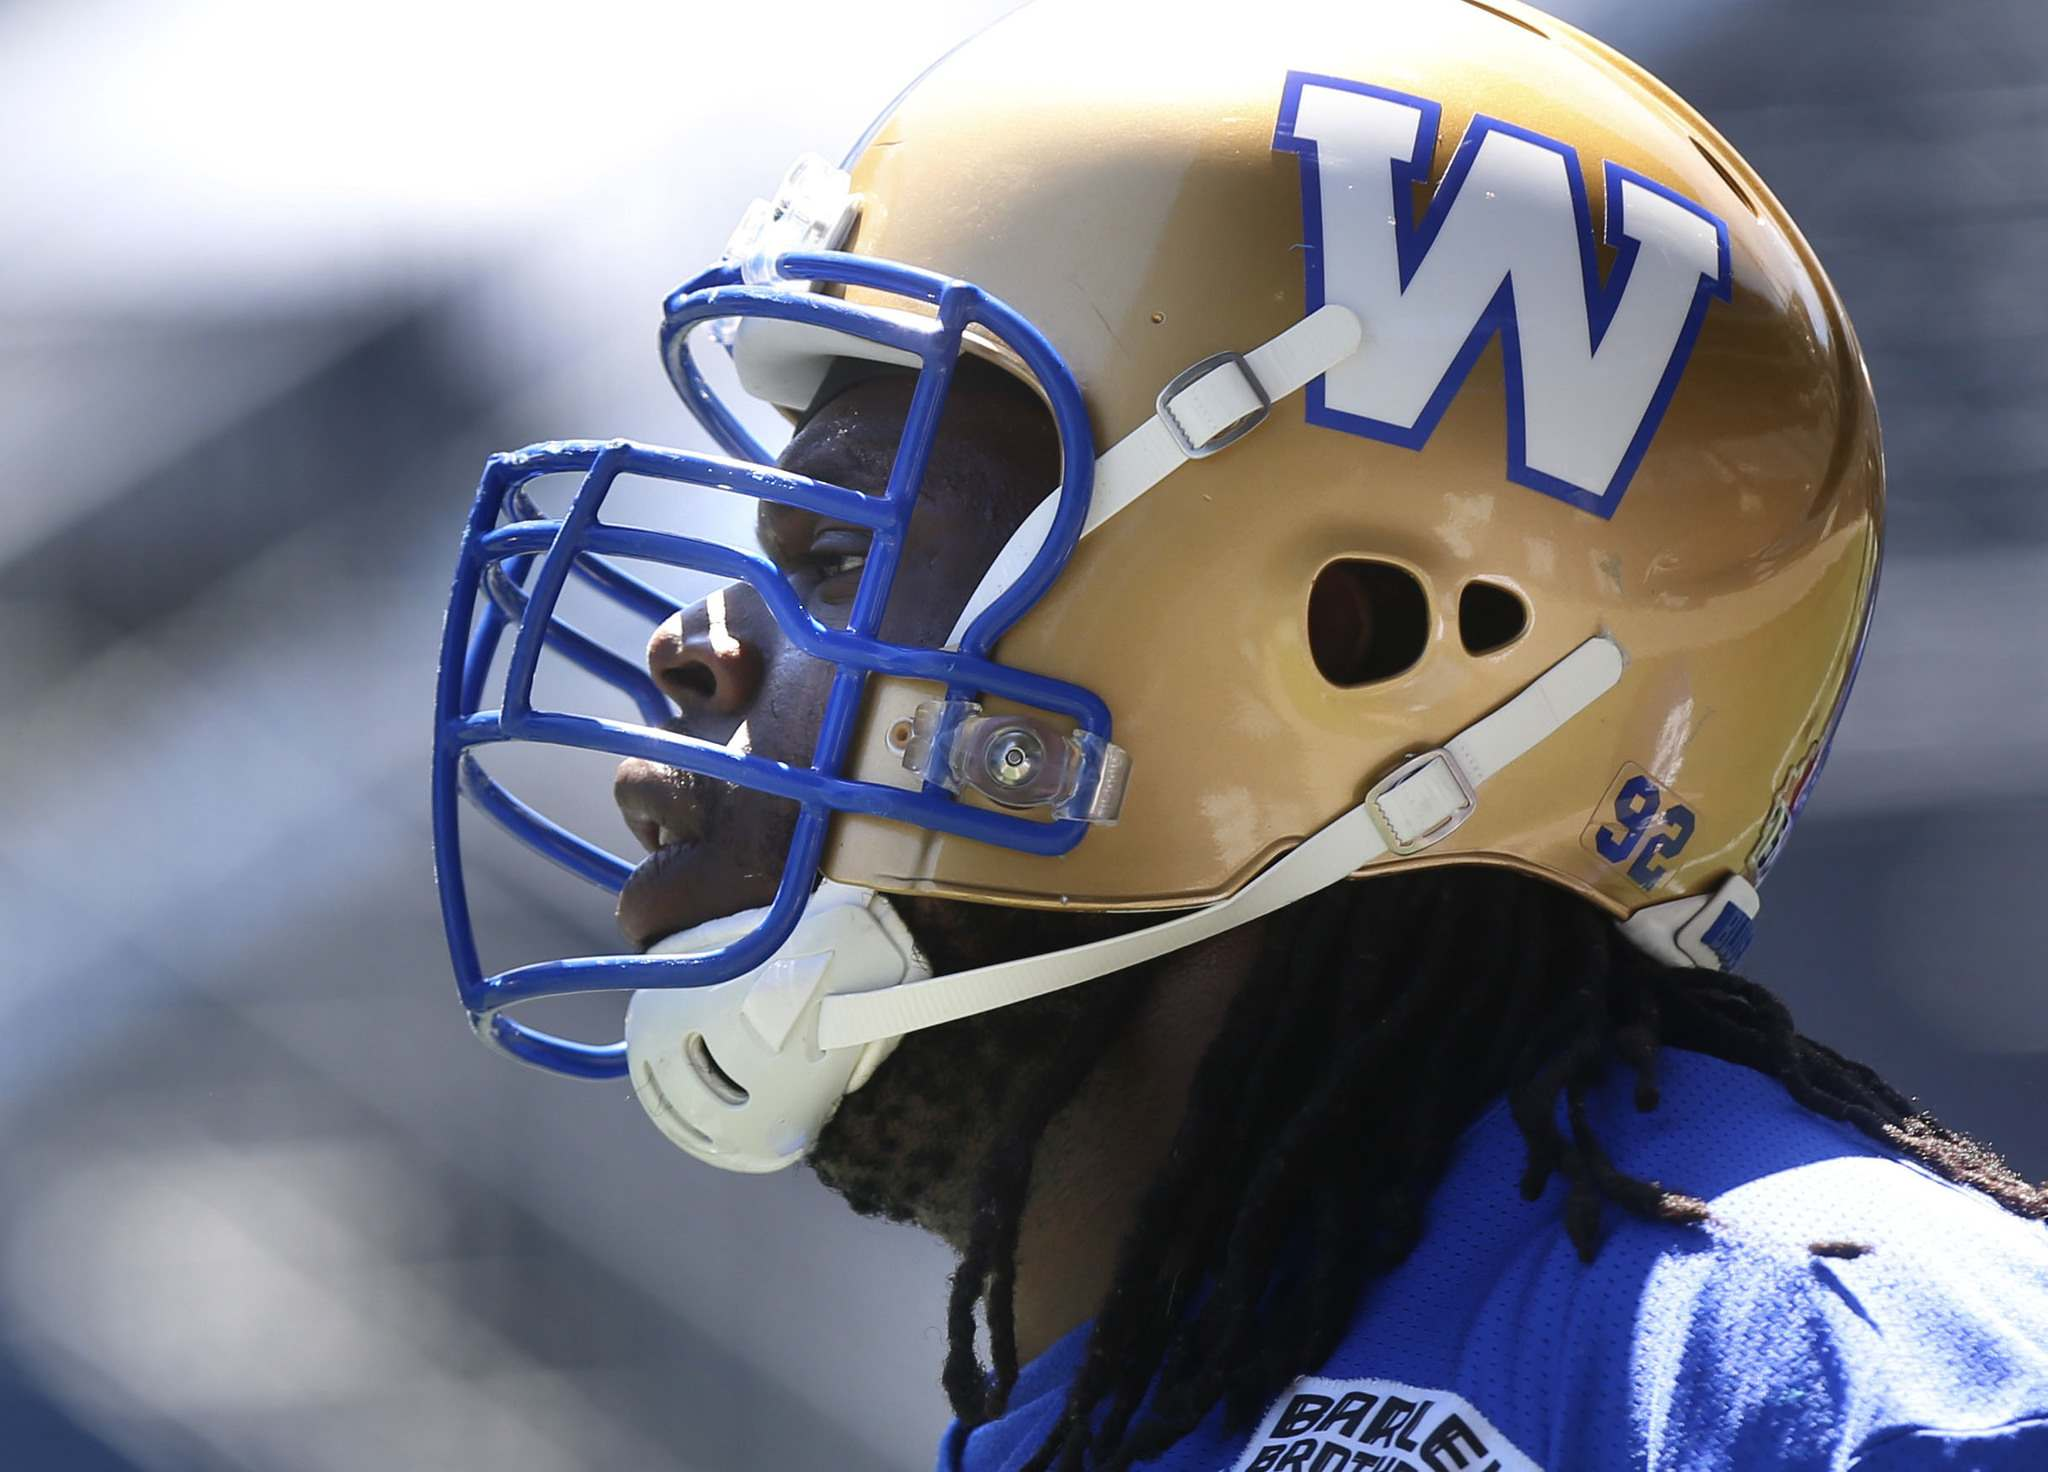 Drake Nevis had a good season and is deserving of a raise, so the Bombers might not be able to keep him. (Wayne Glowacki / Winnipeg Free Press files)